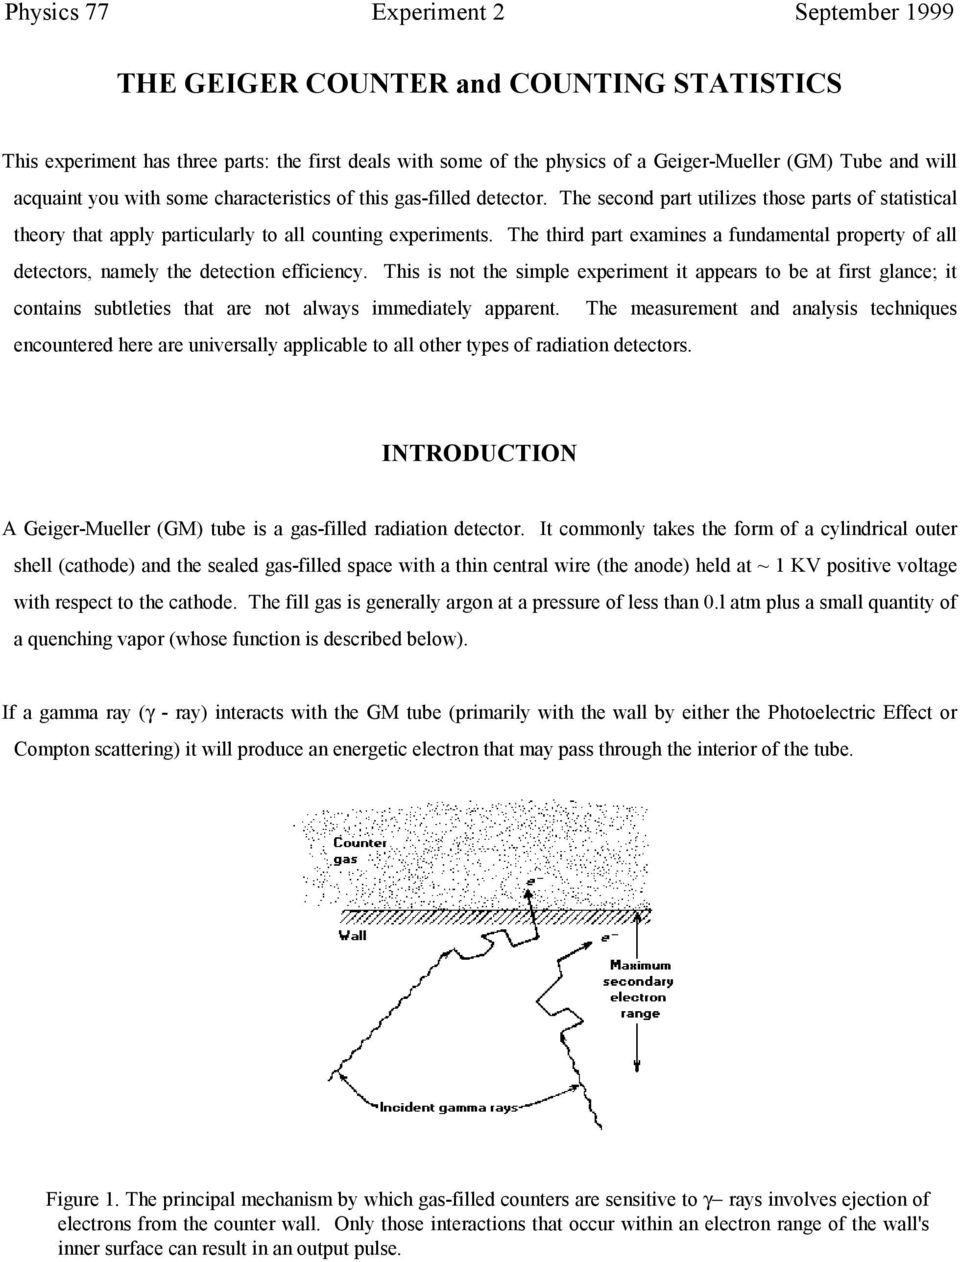 The Geiger Counter And Counting Statistics Pdf Geigercountercircuit Measuringandtestcircuit Circuit Diagram Third Part Examines A Fundamental Property Of All Detectors Namely Detection Efficiency